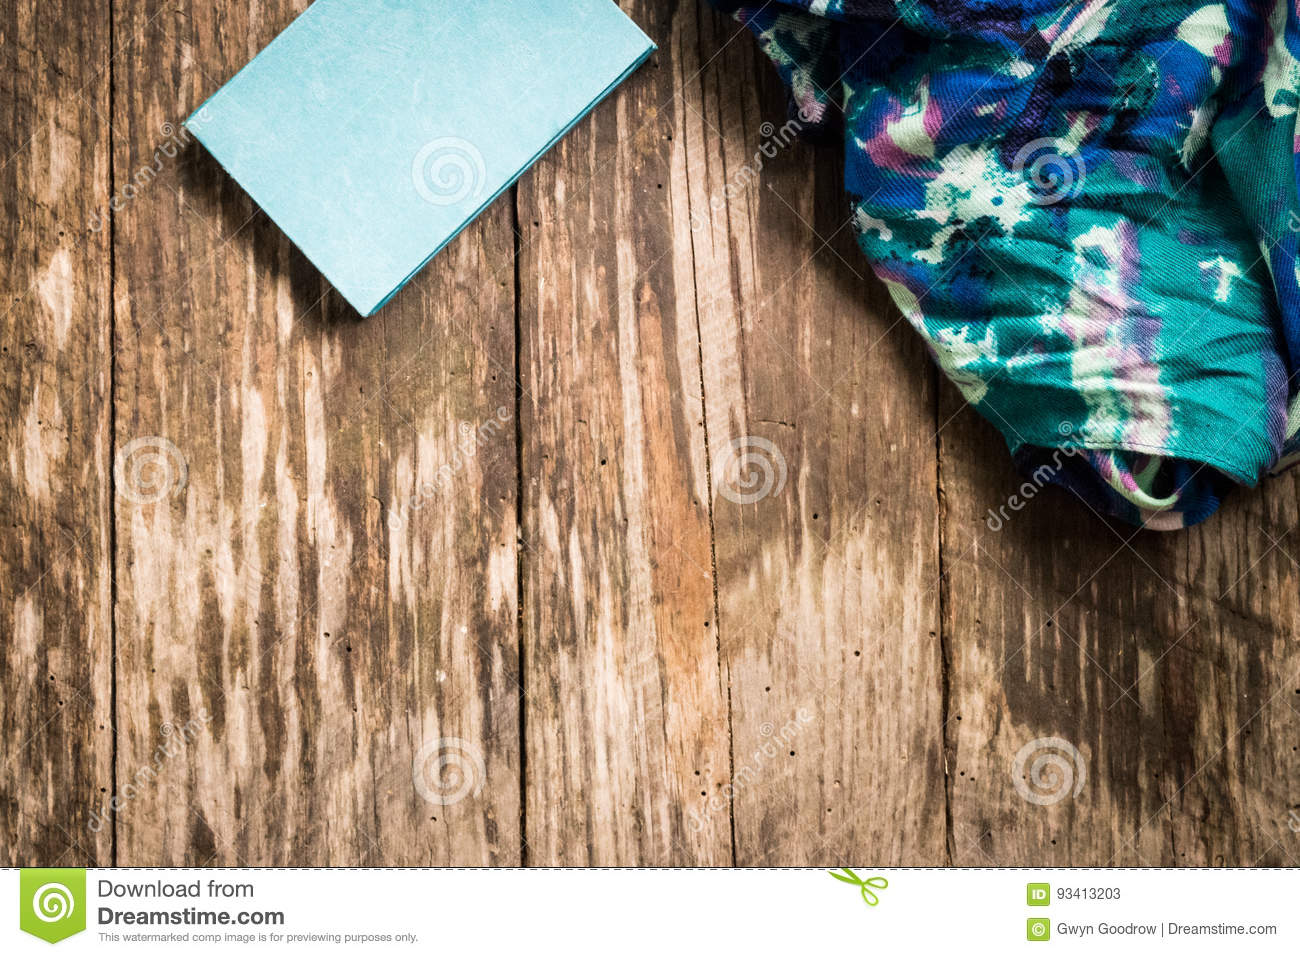 Journal and Scarf Fabric against wood background